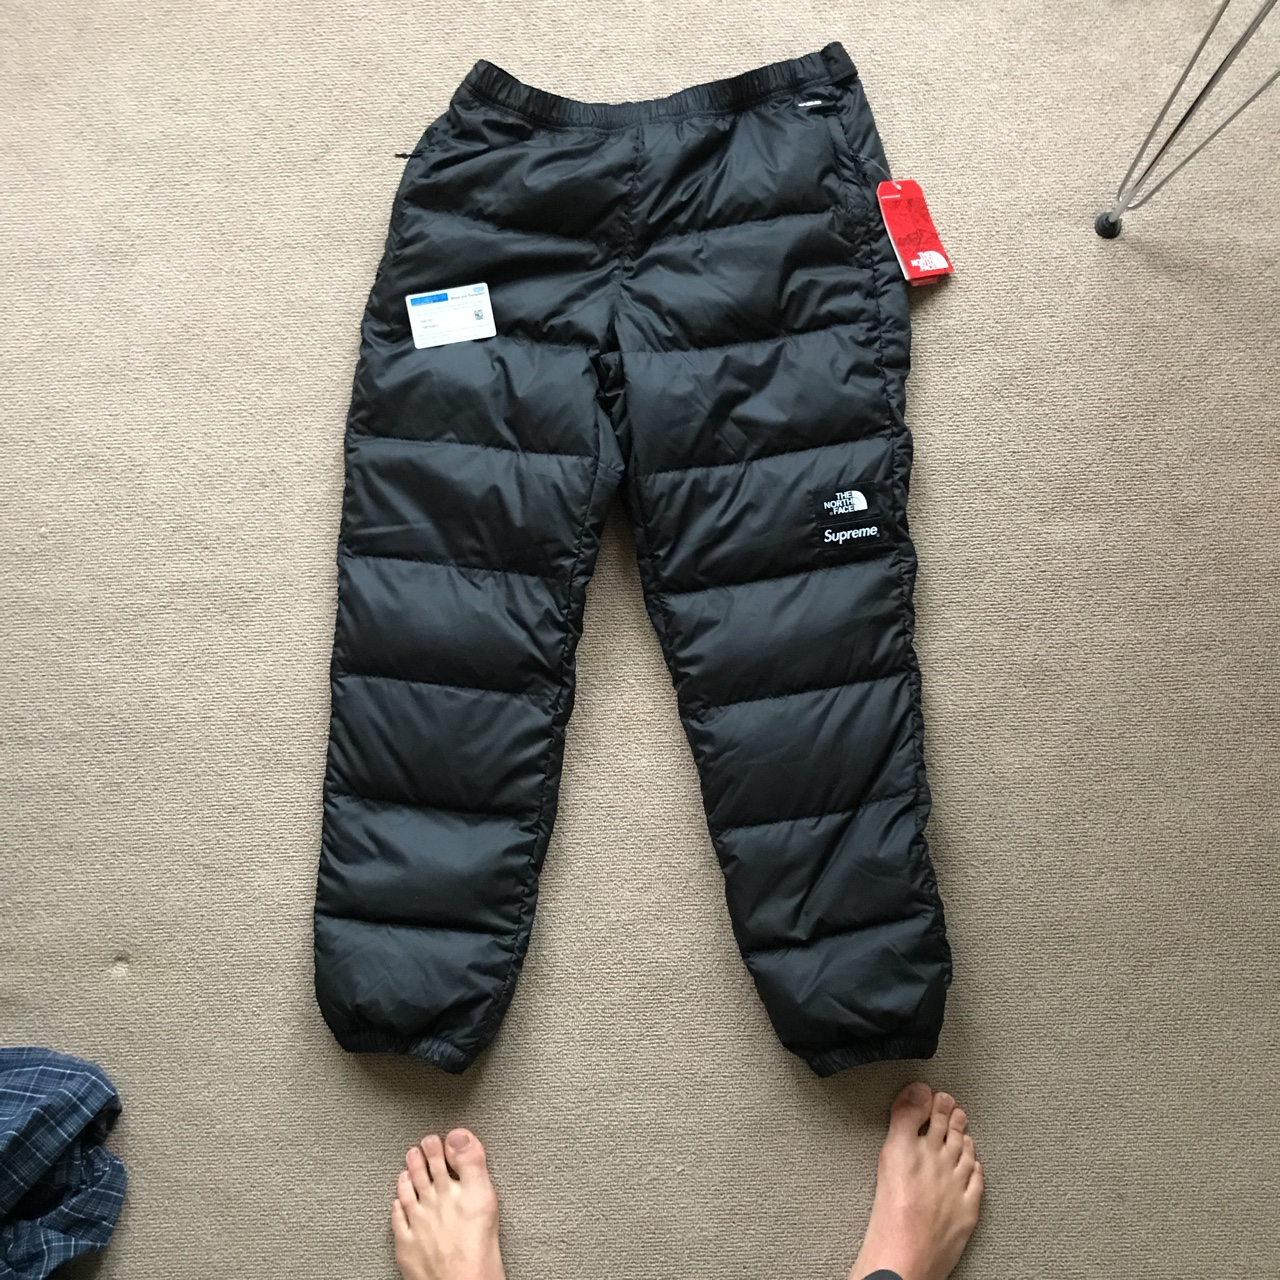 b76b2f71d Supreme x the north face nuptse pants from FW16... - Depop